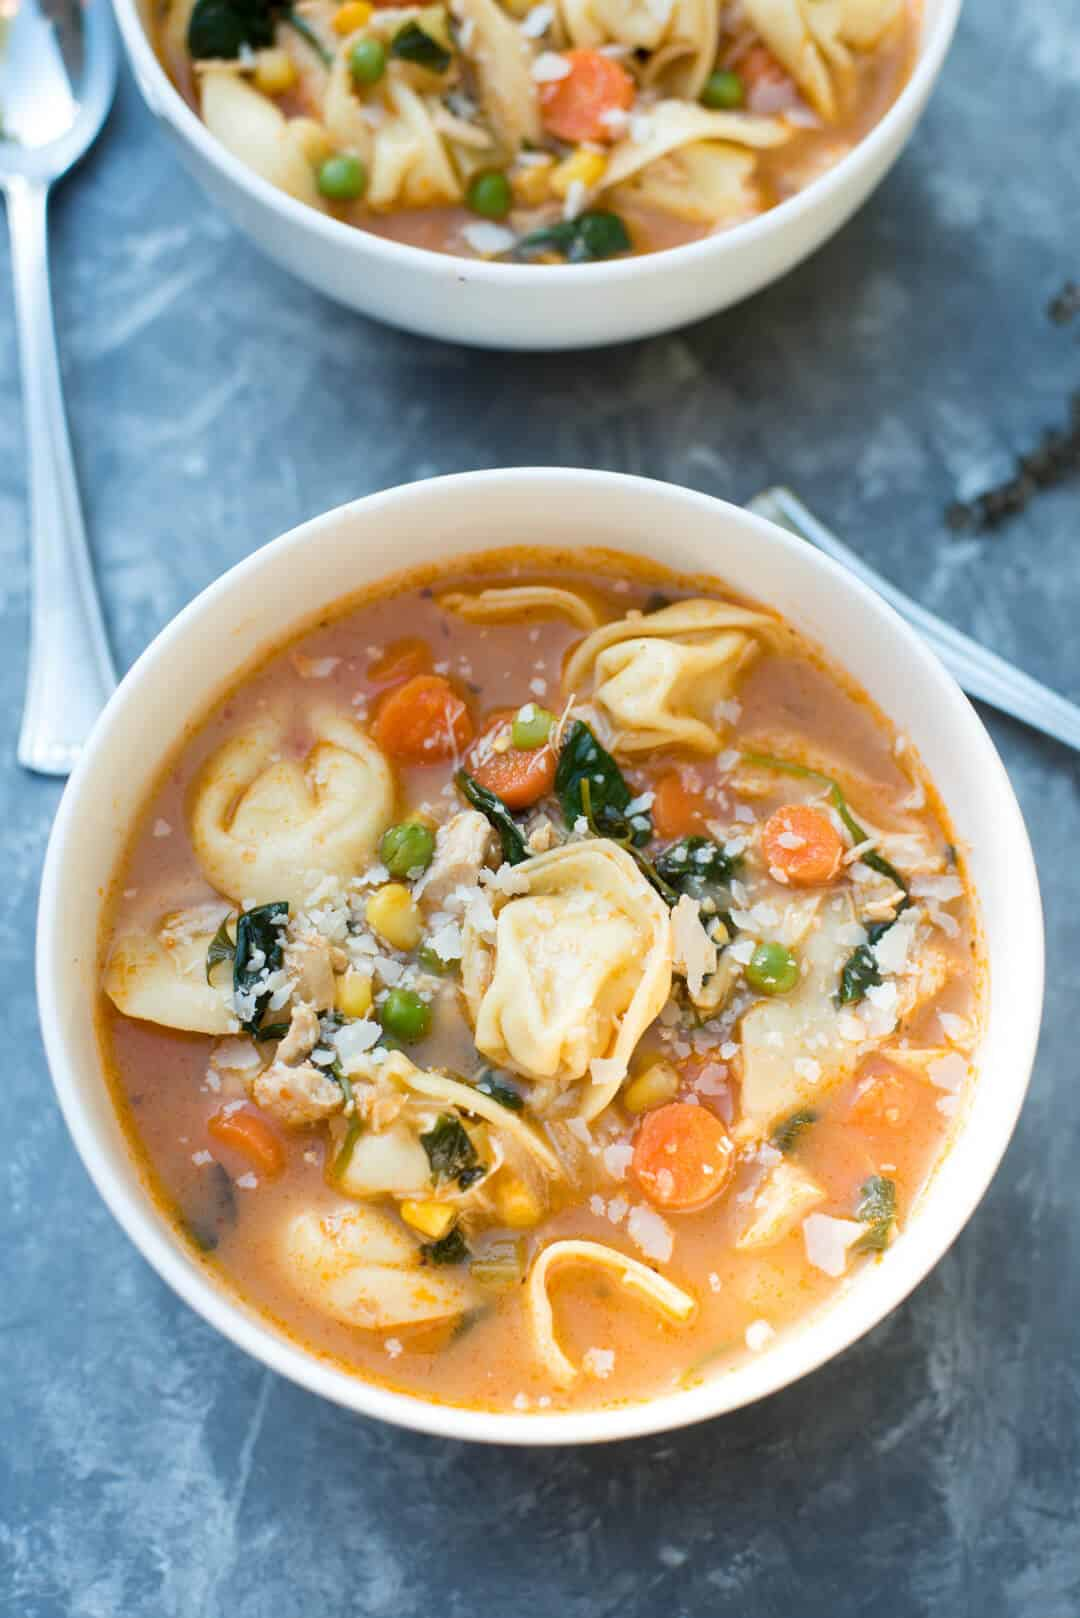 This Chicken Vegetable Tortellini Soup is made easy with a rotisserie chicken and store-bought cheese tortellini. A wholesome, comforting 30-minute meal!